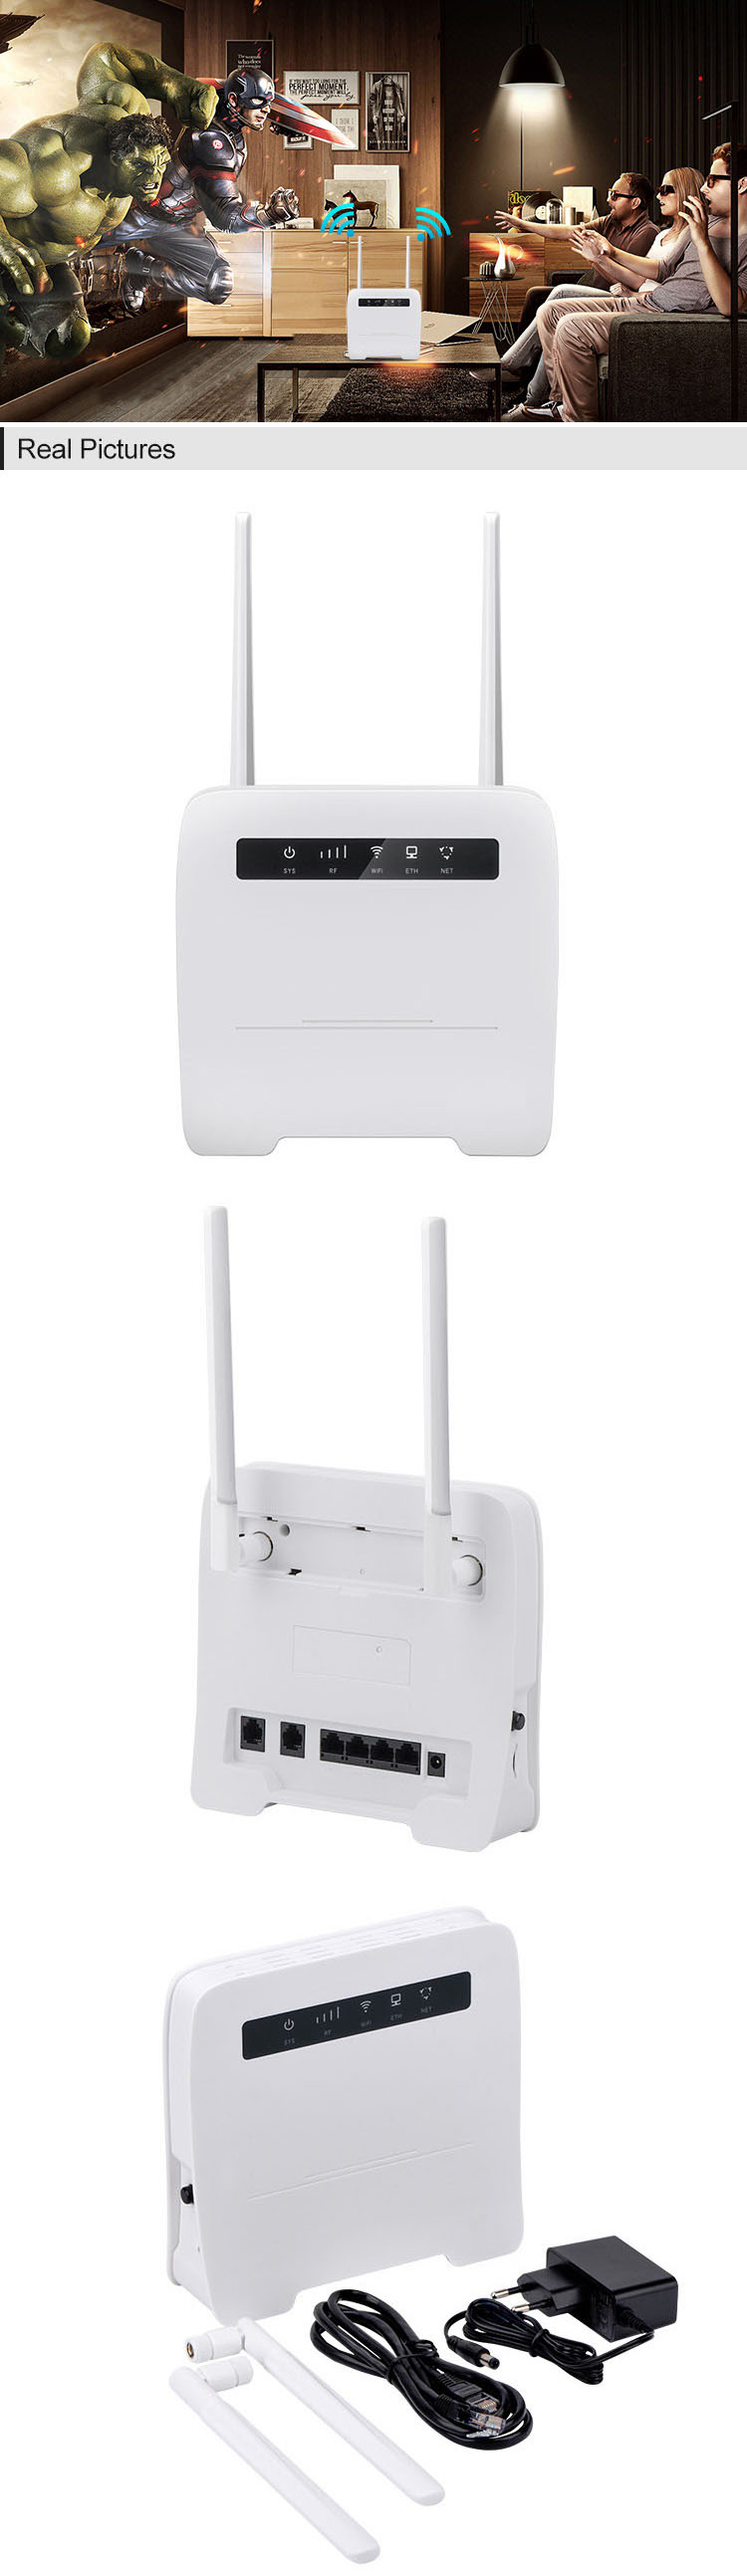 High Range Outdoor Long 192.168.169..1 500 Meter 192.168.1.1 4 Port Best 300m Wireless Router